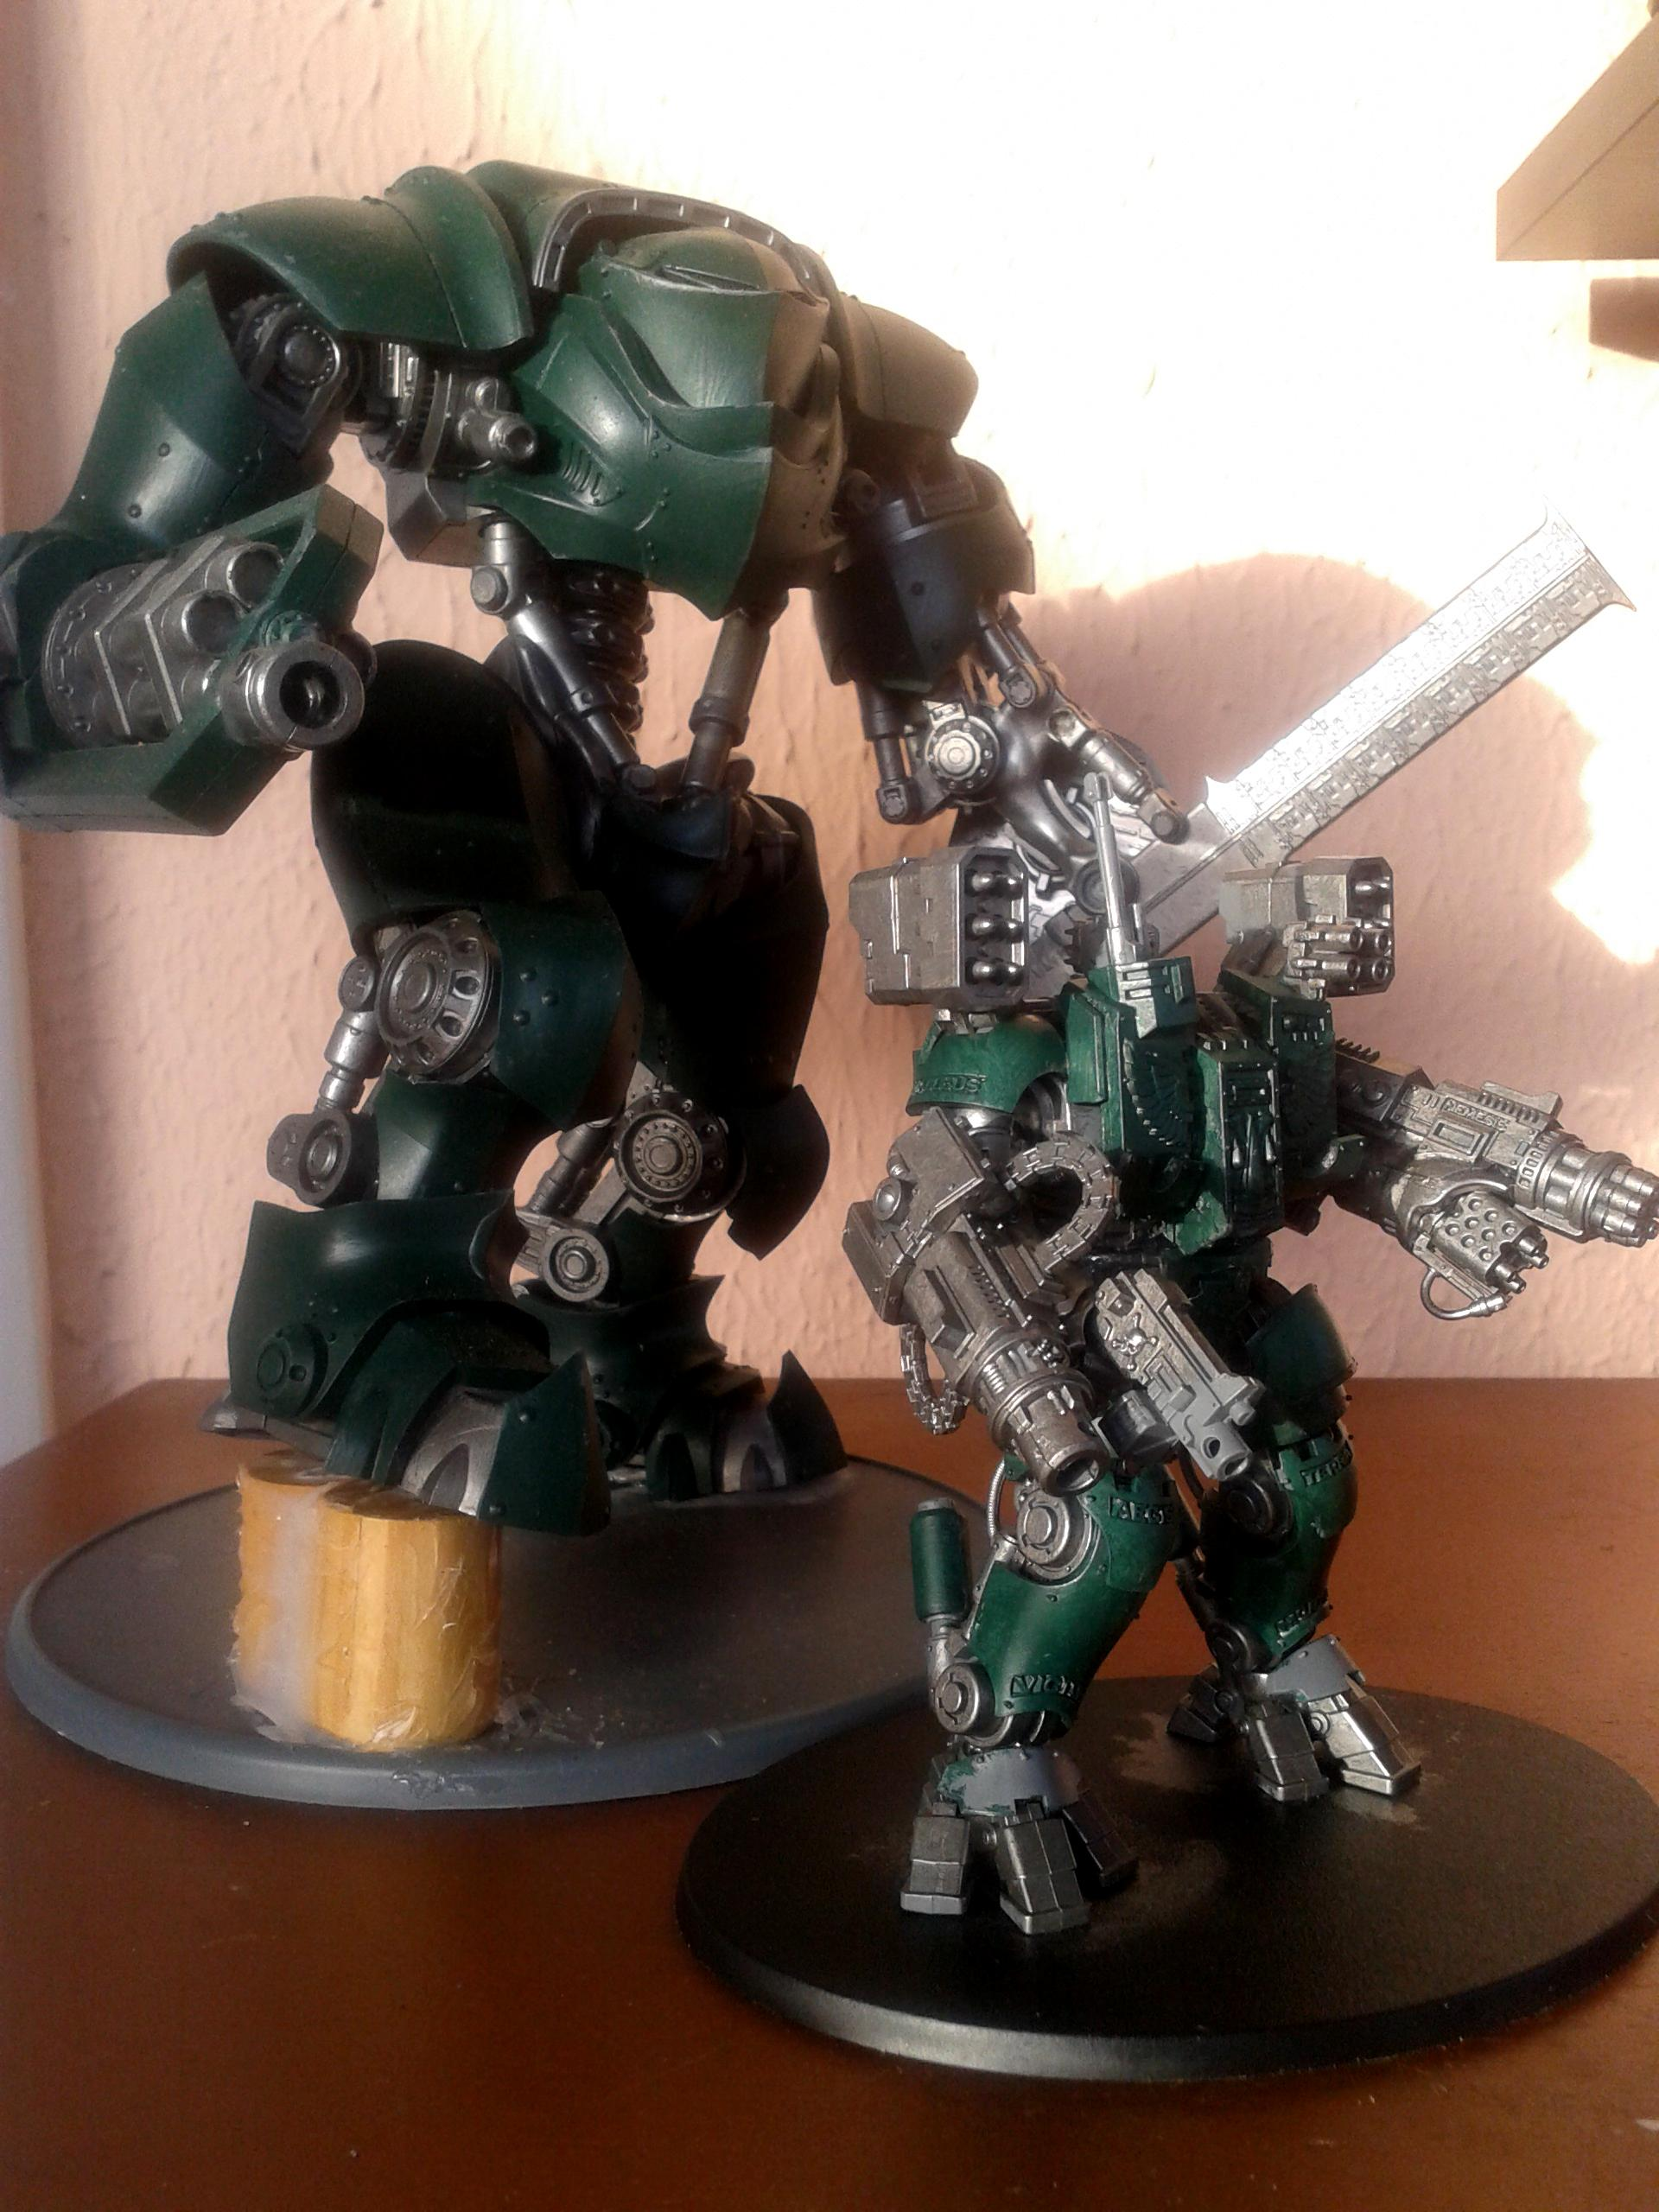 Comparison, Conversion, Crusader, Dreadknight, Dreadnought, Dreamforge, Gun, Guns, Leviathan, Scale, Size, Weapon